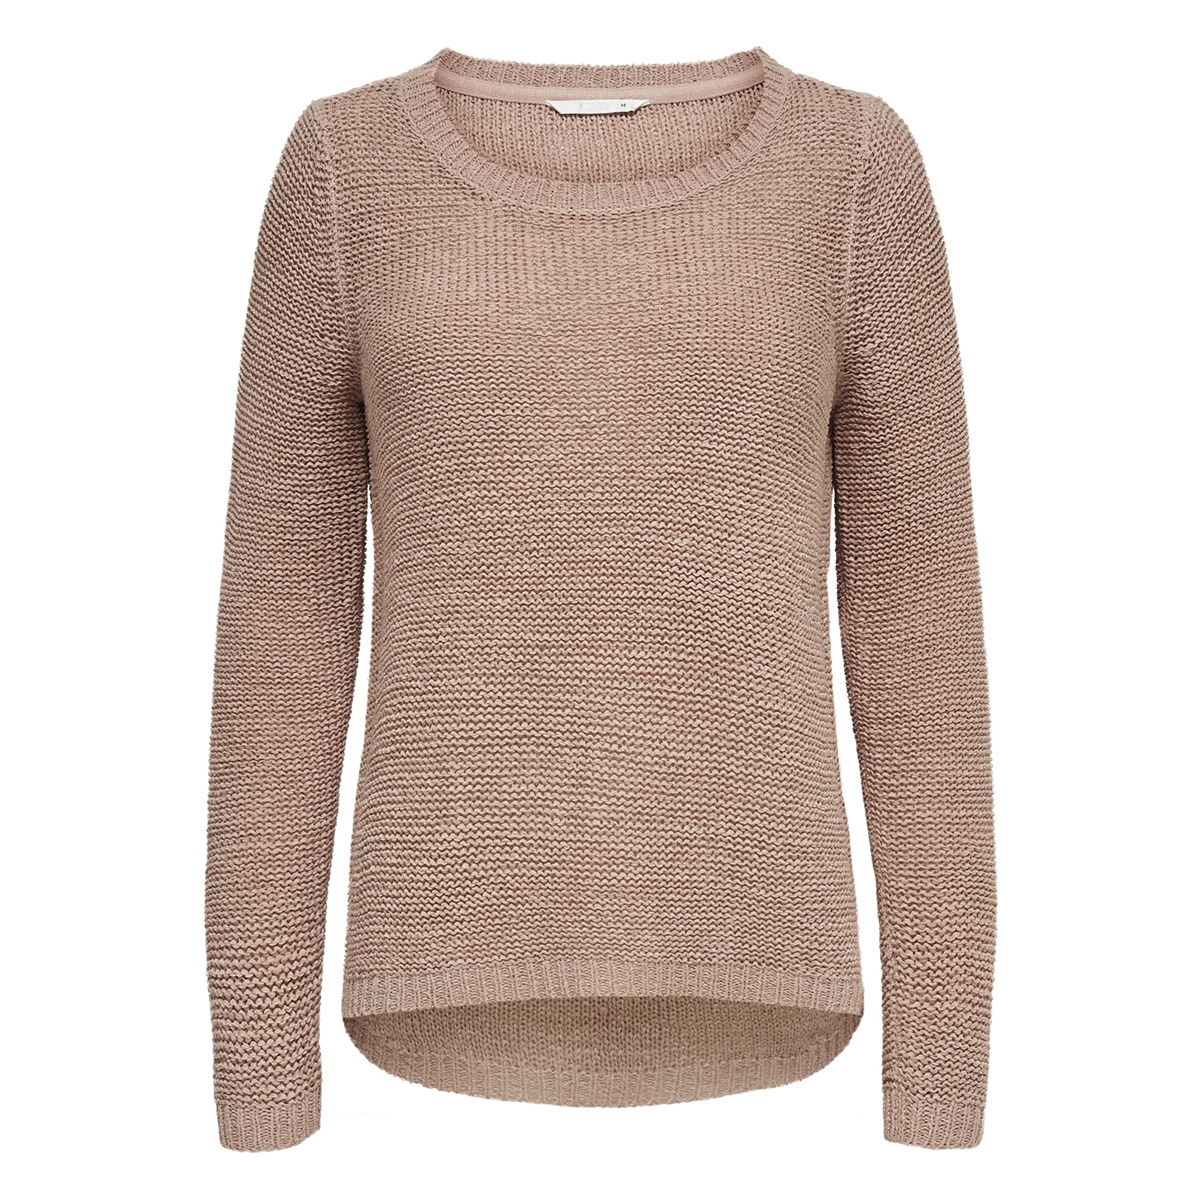 onlgeena xo l/s pullover knt noos 15113356 only trui misty rose